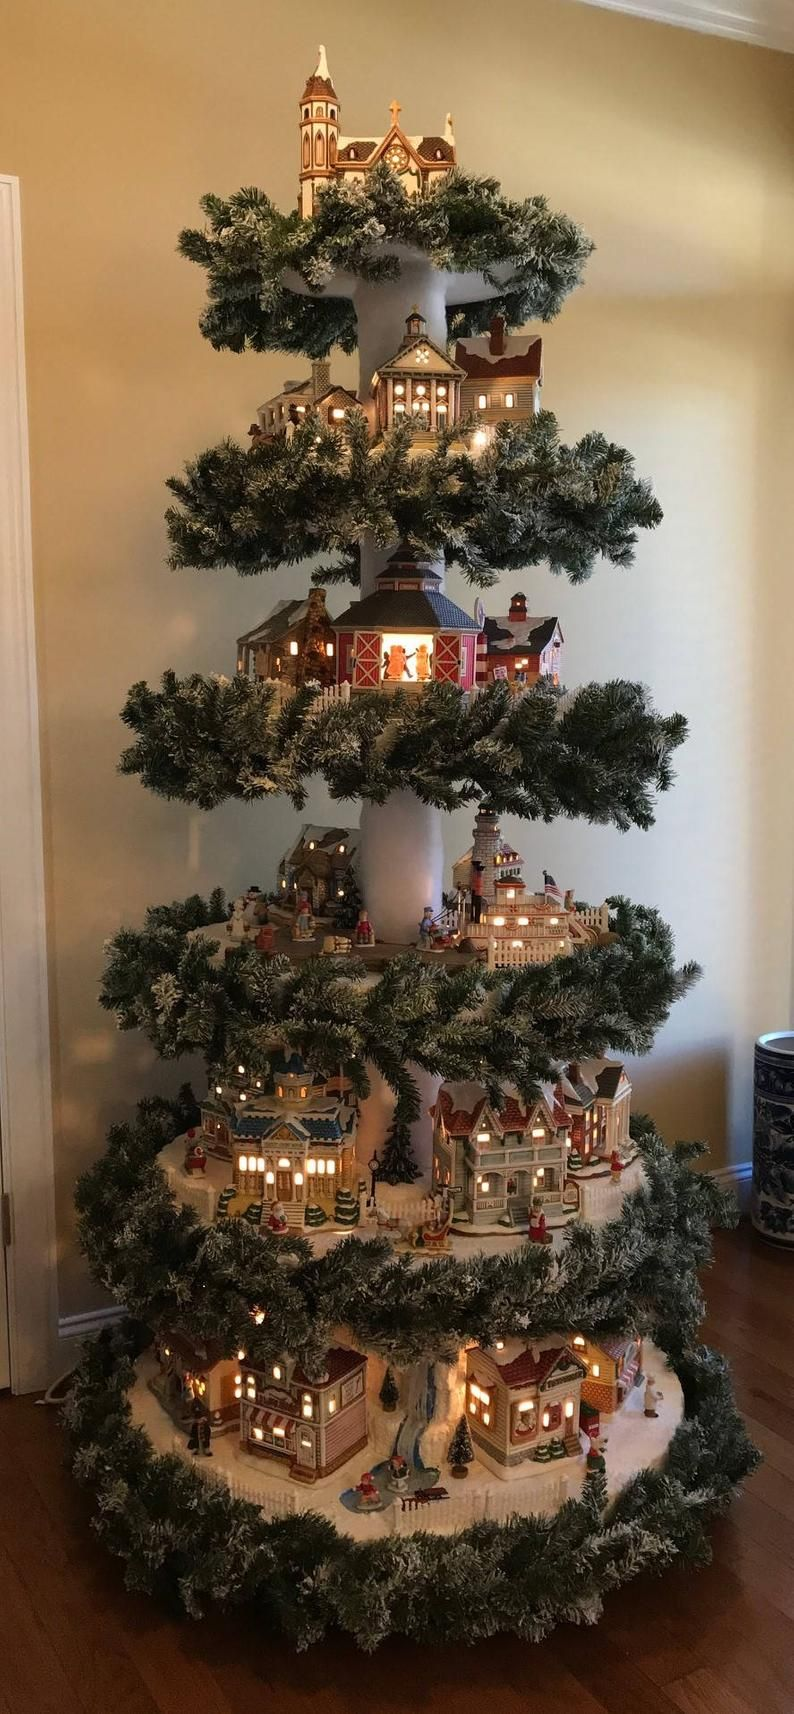 Christmas Village Tree Instructions Only Christmas Village Etsy Diy Christmas Village Displays Diy Christmas Village Christmas Tree Village